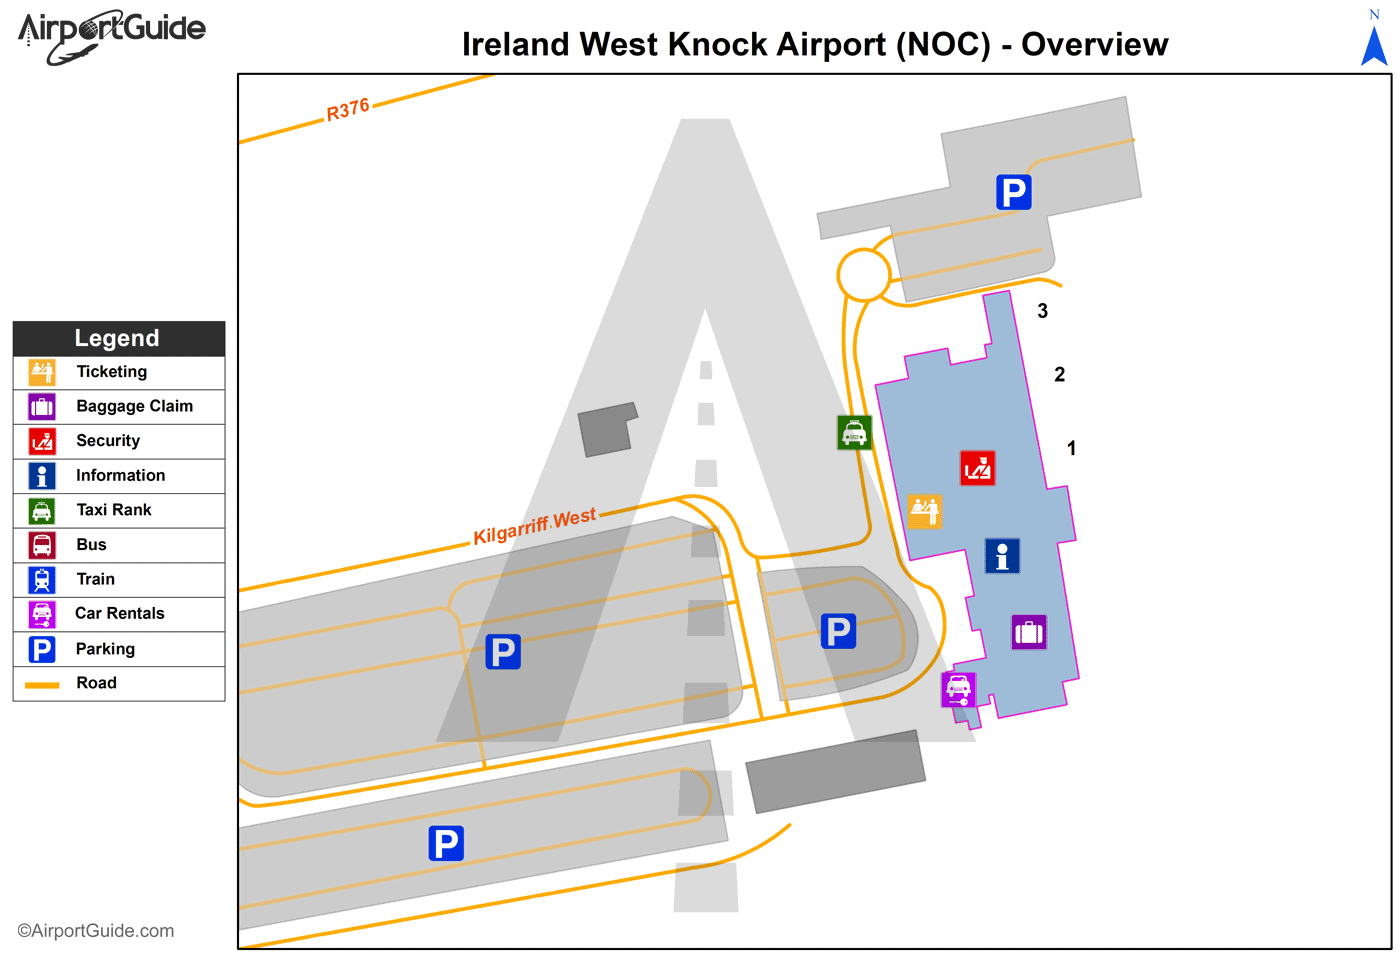 Charleston - Ireland West Knock (NOC) Airport Terminal Map - Overview